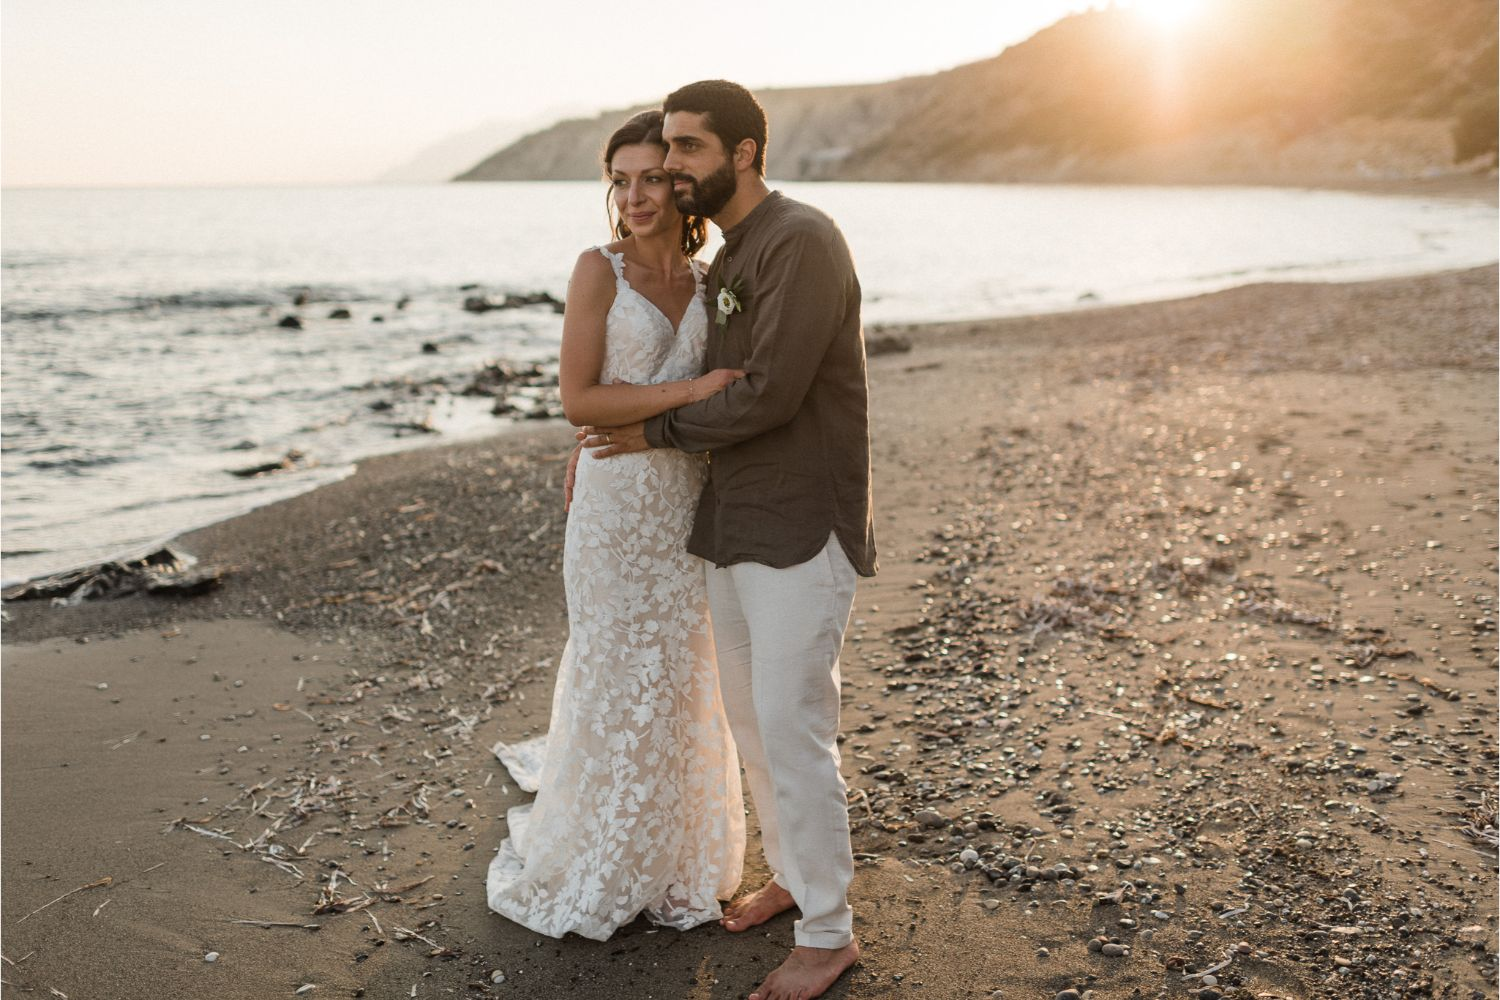 newlyweds photoshoot after beach wedding ceremony in Crete